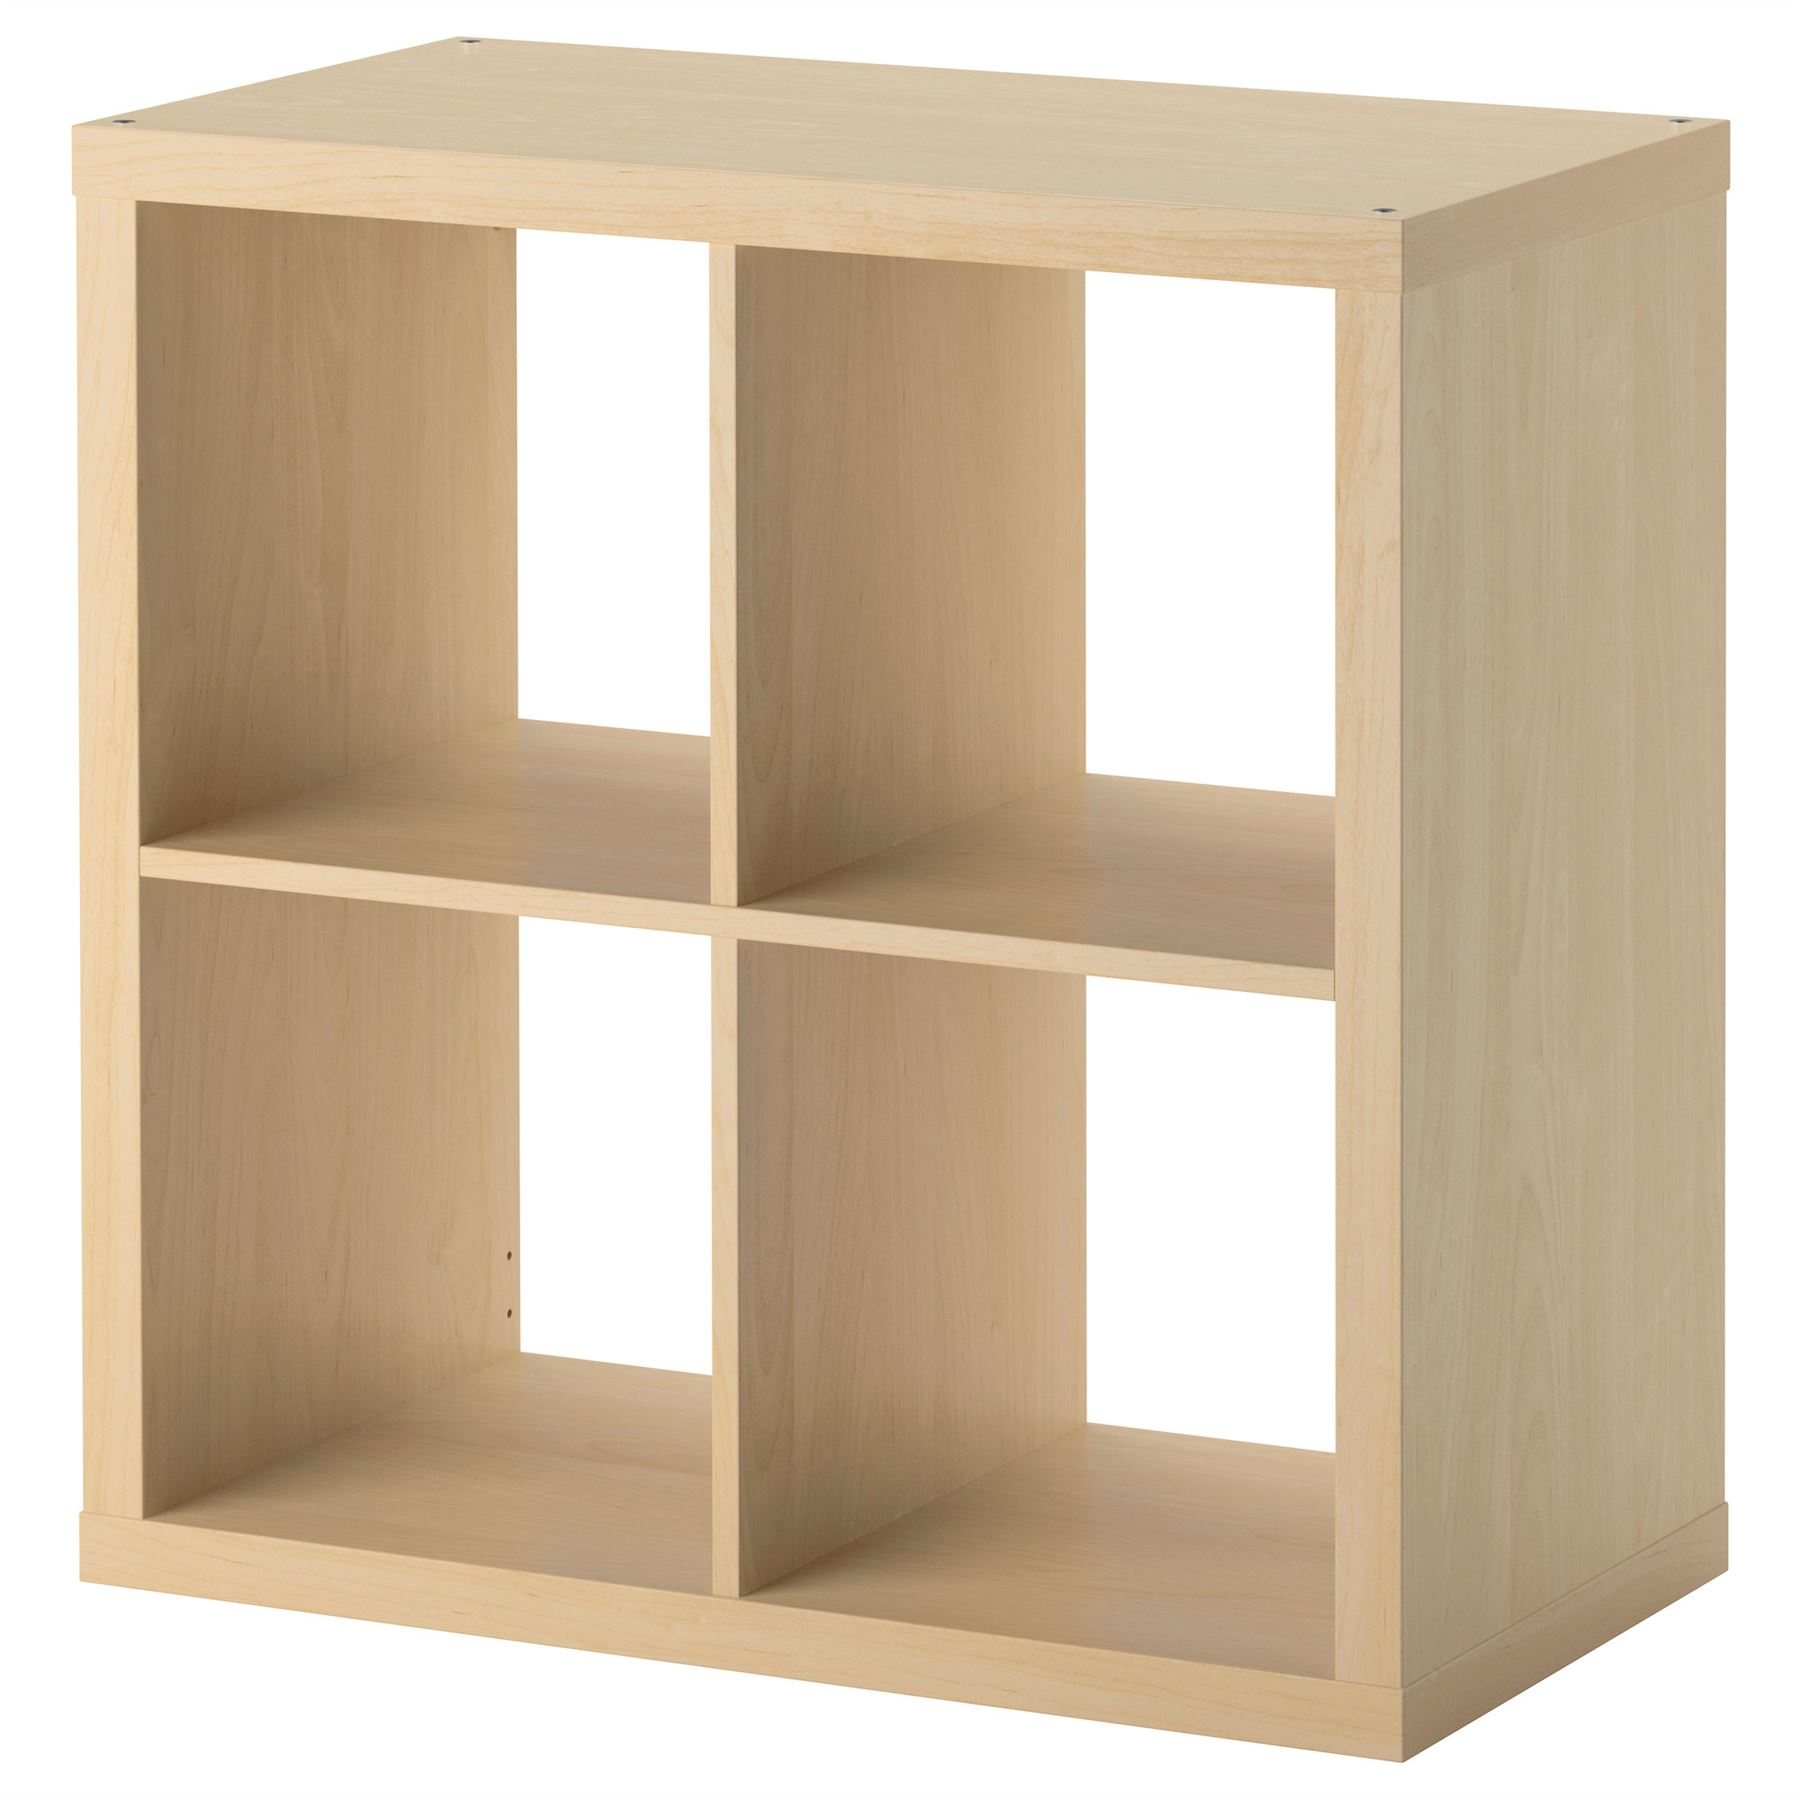 ikea kallax 4 cube storage bookcase square shelving unit various colours. Black Bedroom Furniture Sets. Home Design Ideas